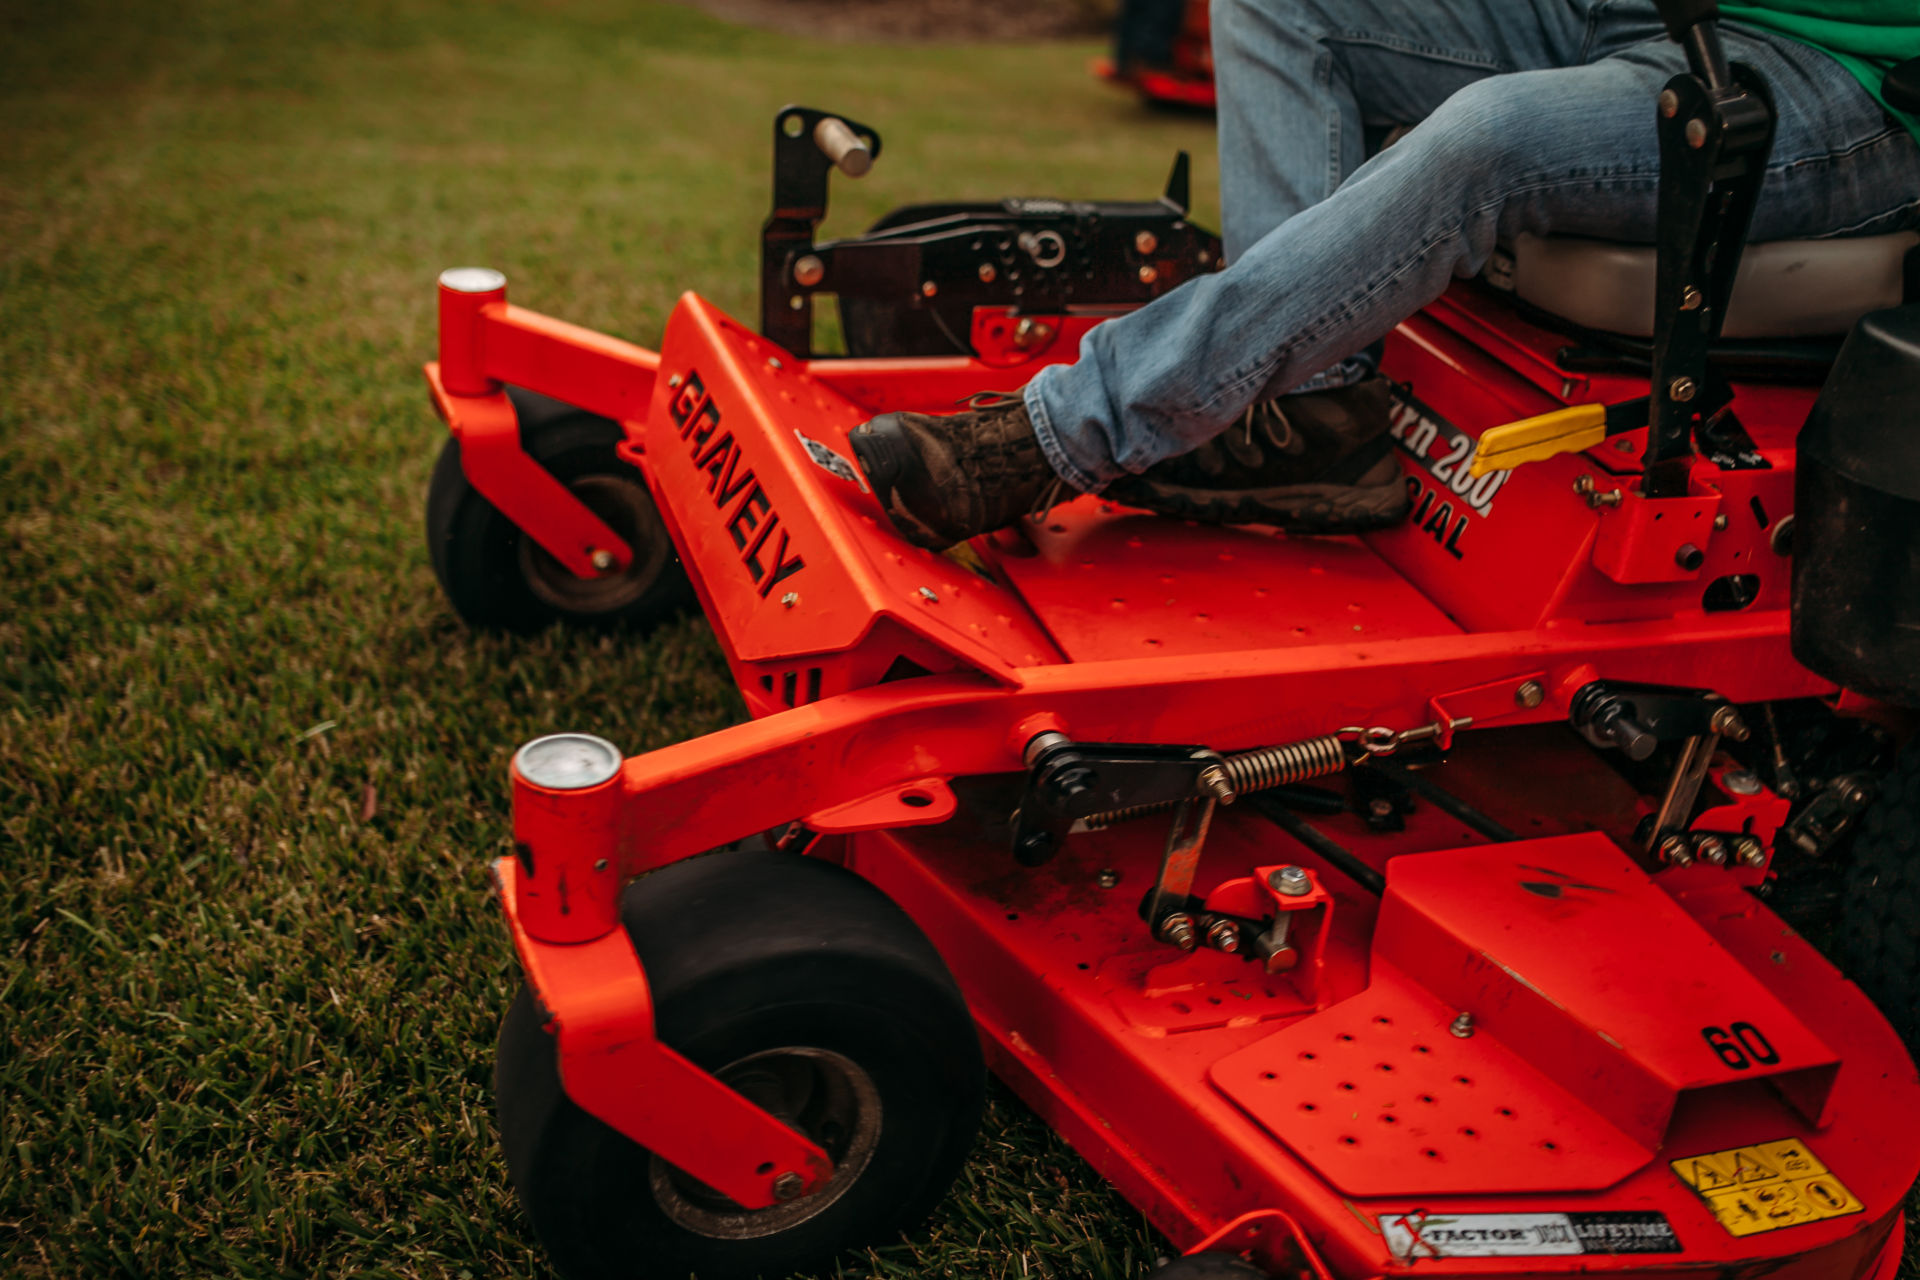 Man riding on a commercial lawn mower